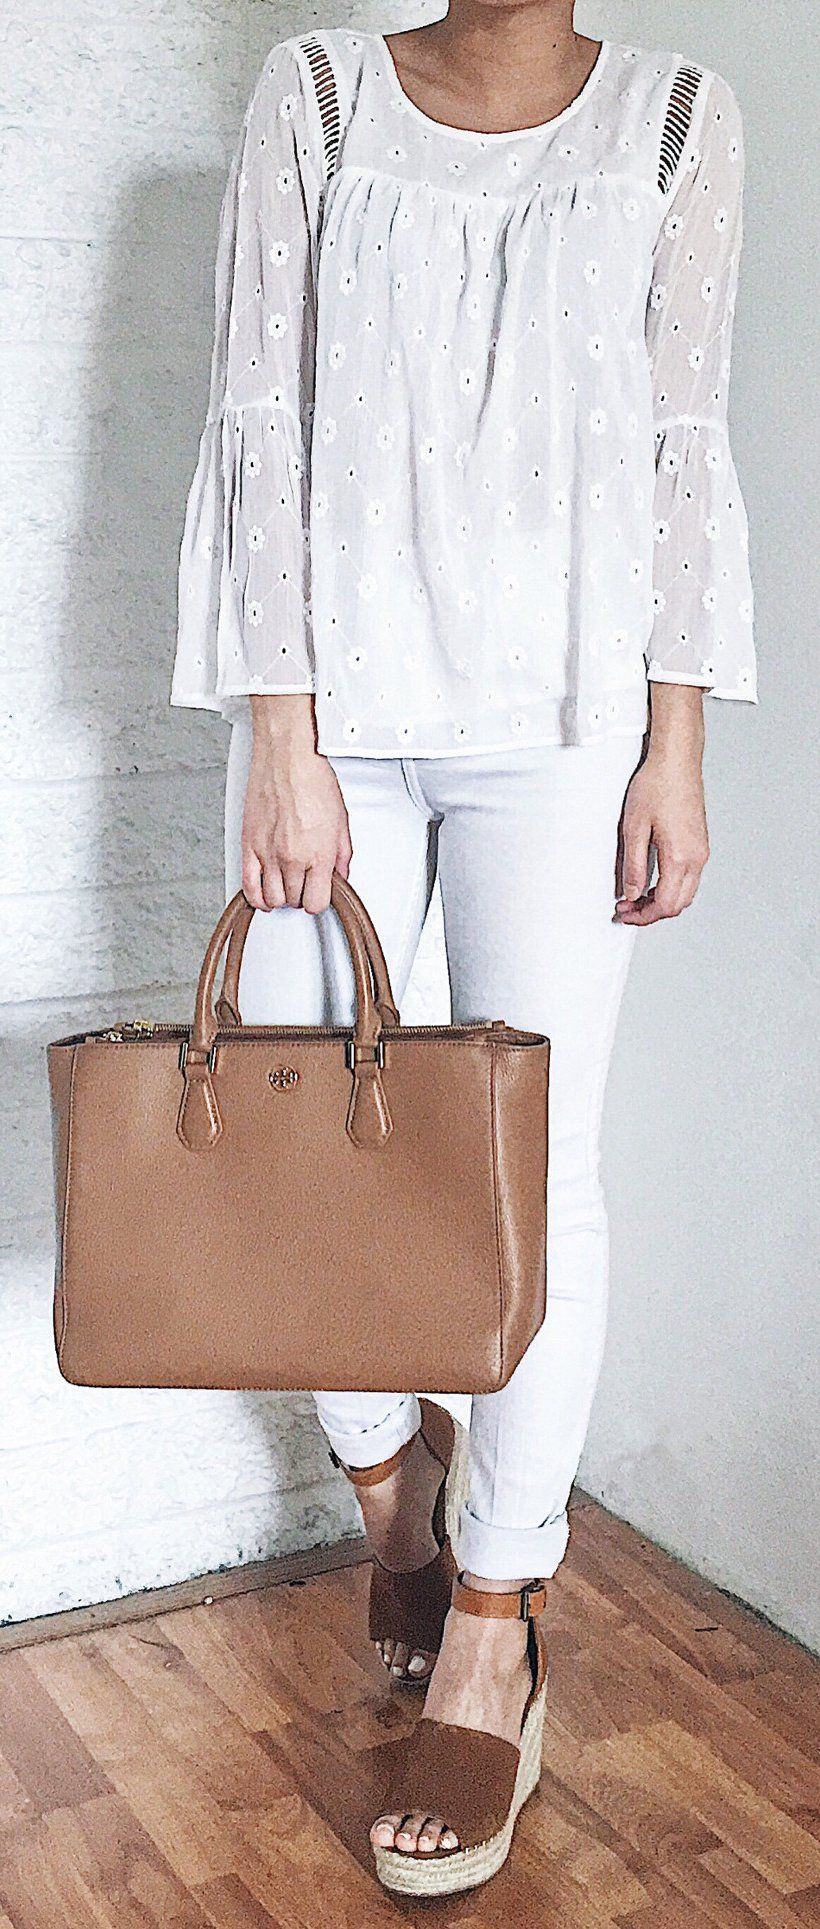 10704918798 White Lace Top   White Skinny Jeans   Brown Suede Platform Sandals   Brown  Leather Tote Bag